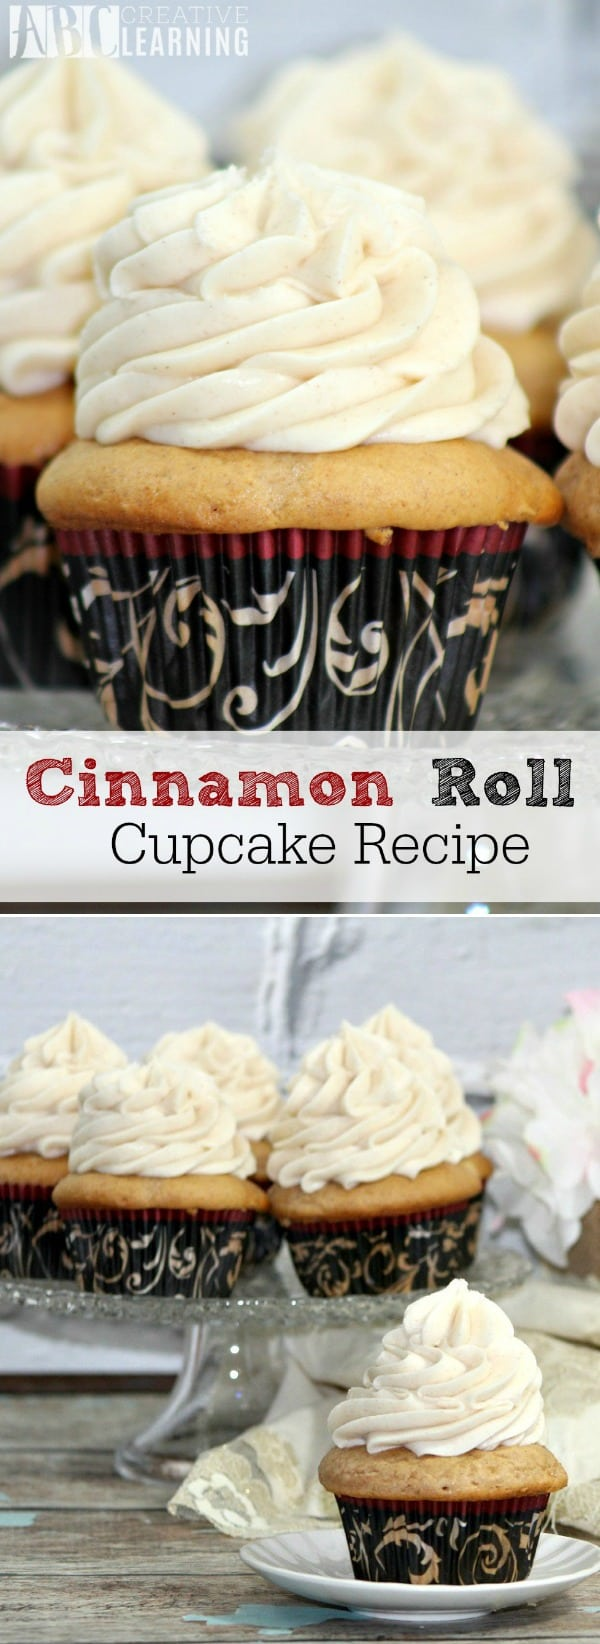 Does your family love fall desserts? Then this Cinnamon Roll Cupcake Recipe is for you! - simplytodaylife.com #dessert #cupcake #cinnamonroll #cinnamonrollcupcake #cinnamonrecipe #creamcheesefrosting #falldessert #falltreat